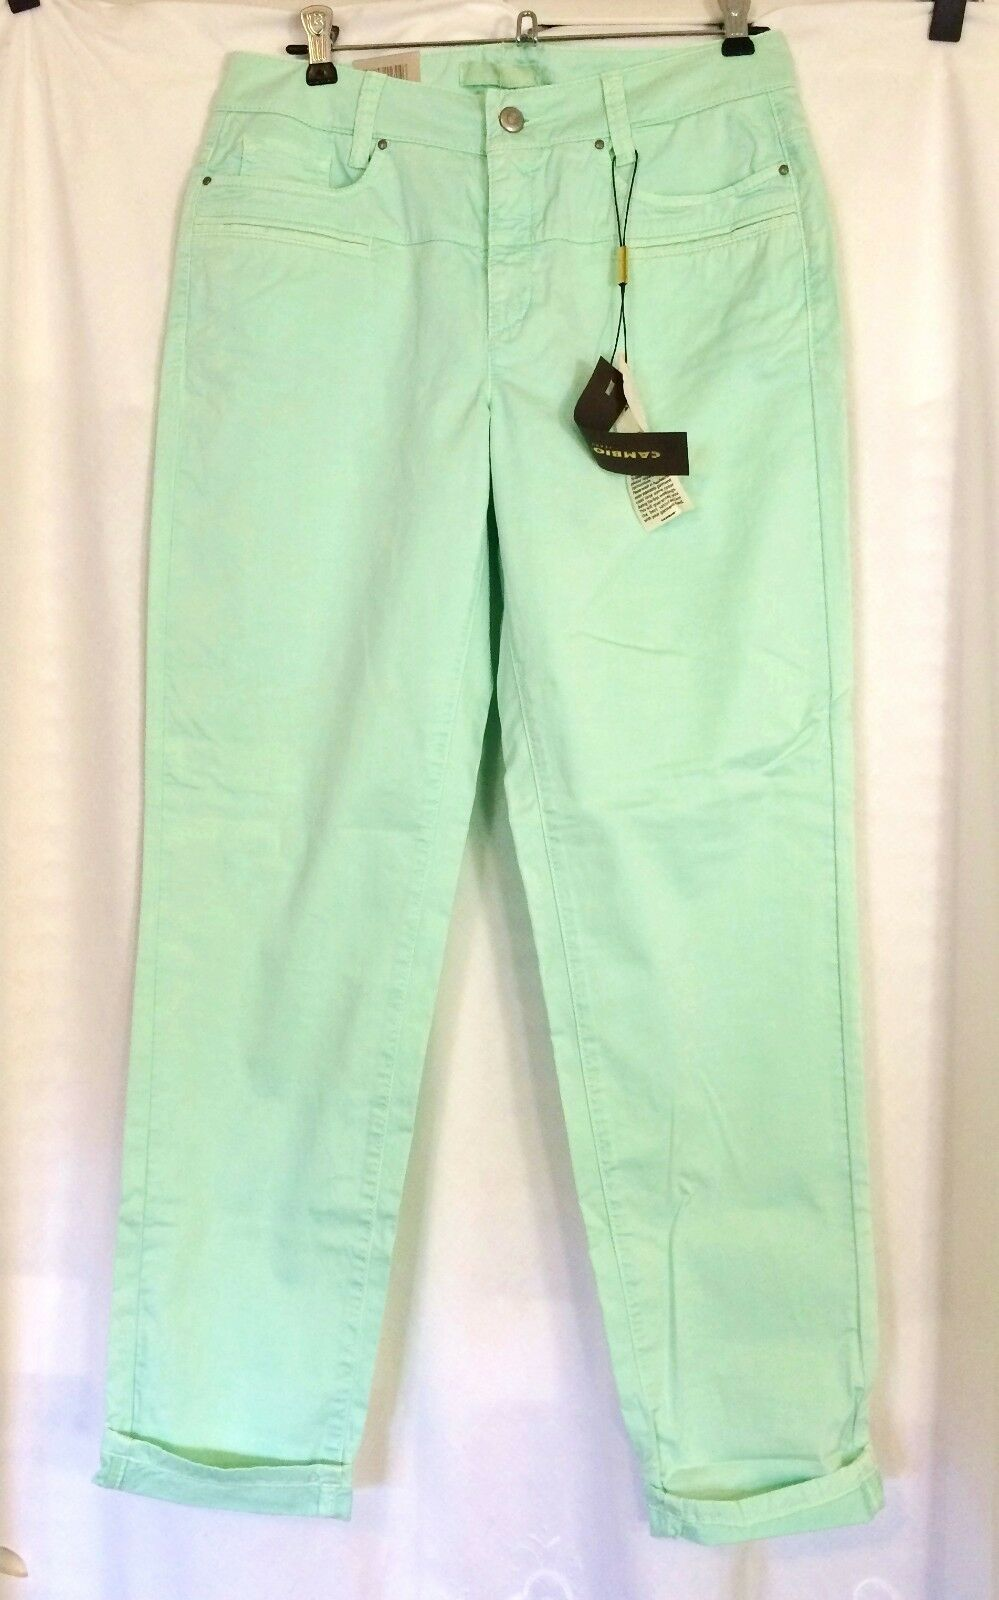 NWT Cambio Perarlie Pants light-green  Soft, stretch  Size  10  Org. 125.00